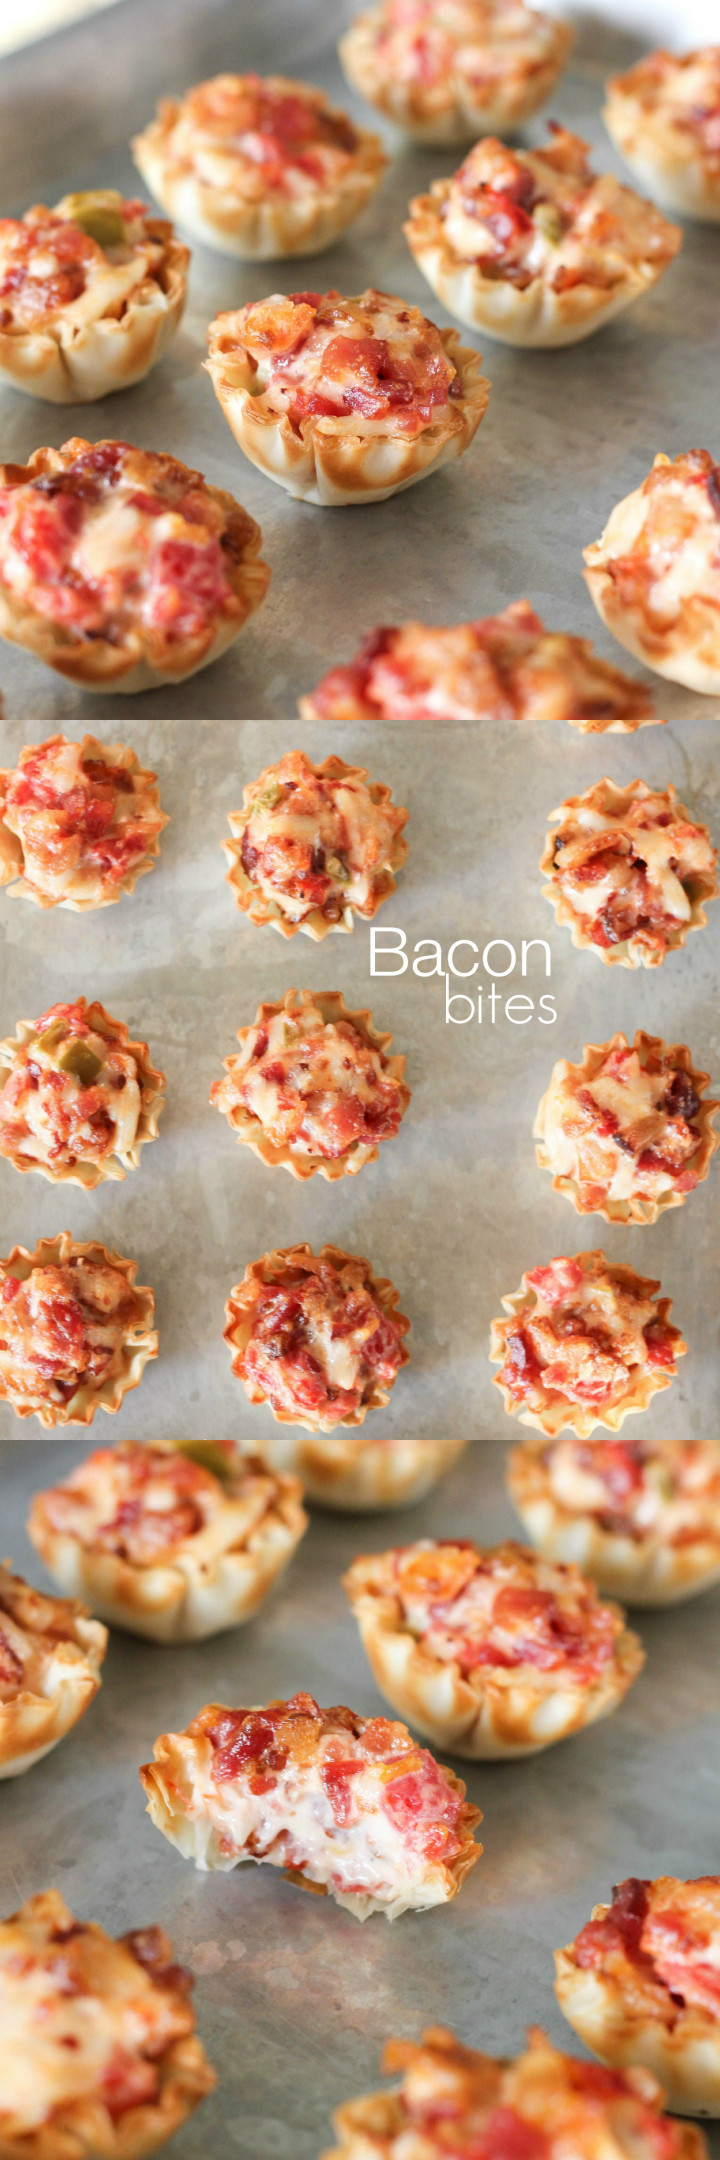 Tomato Bacon Bites